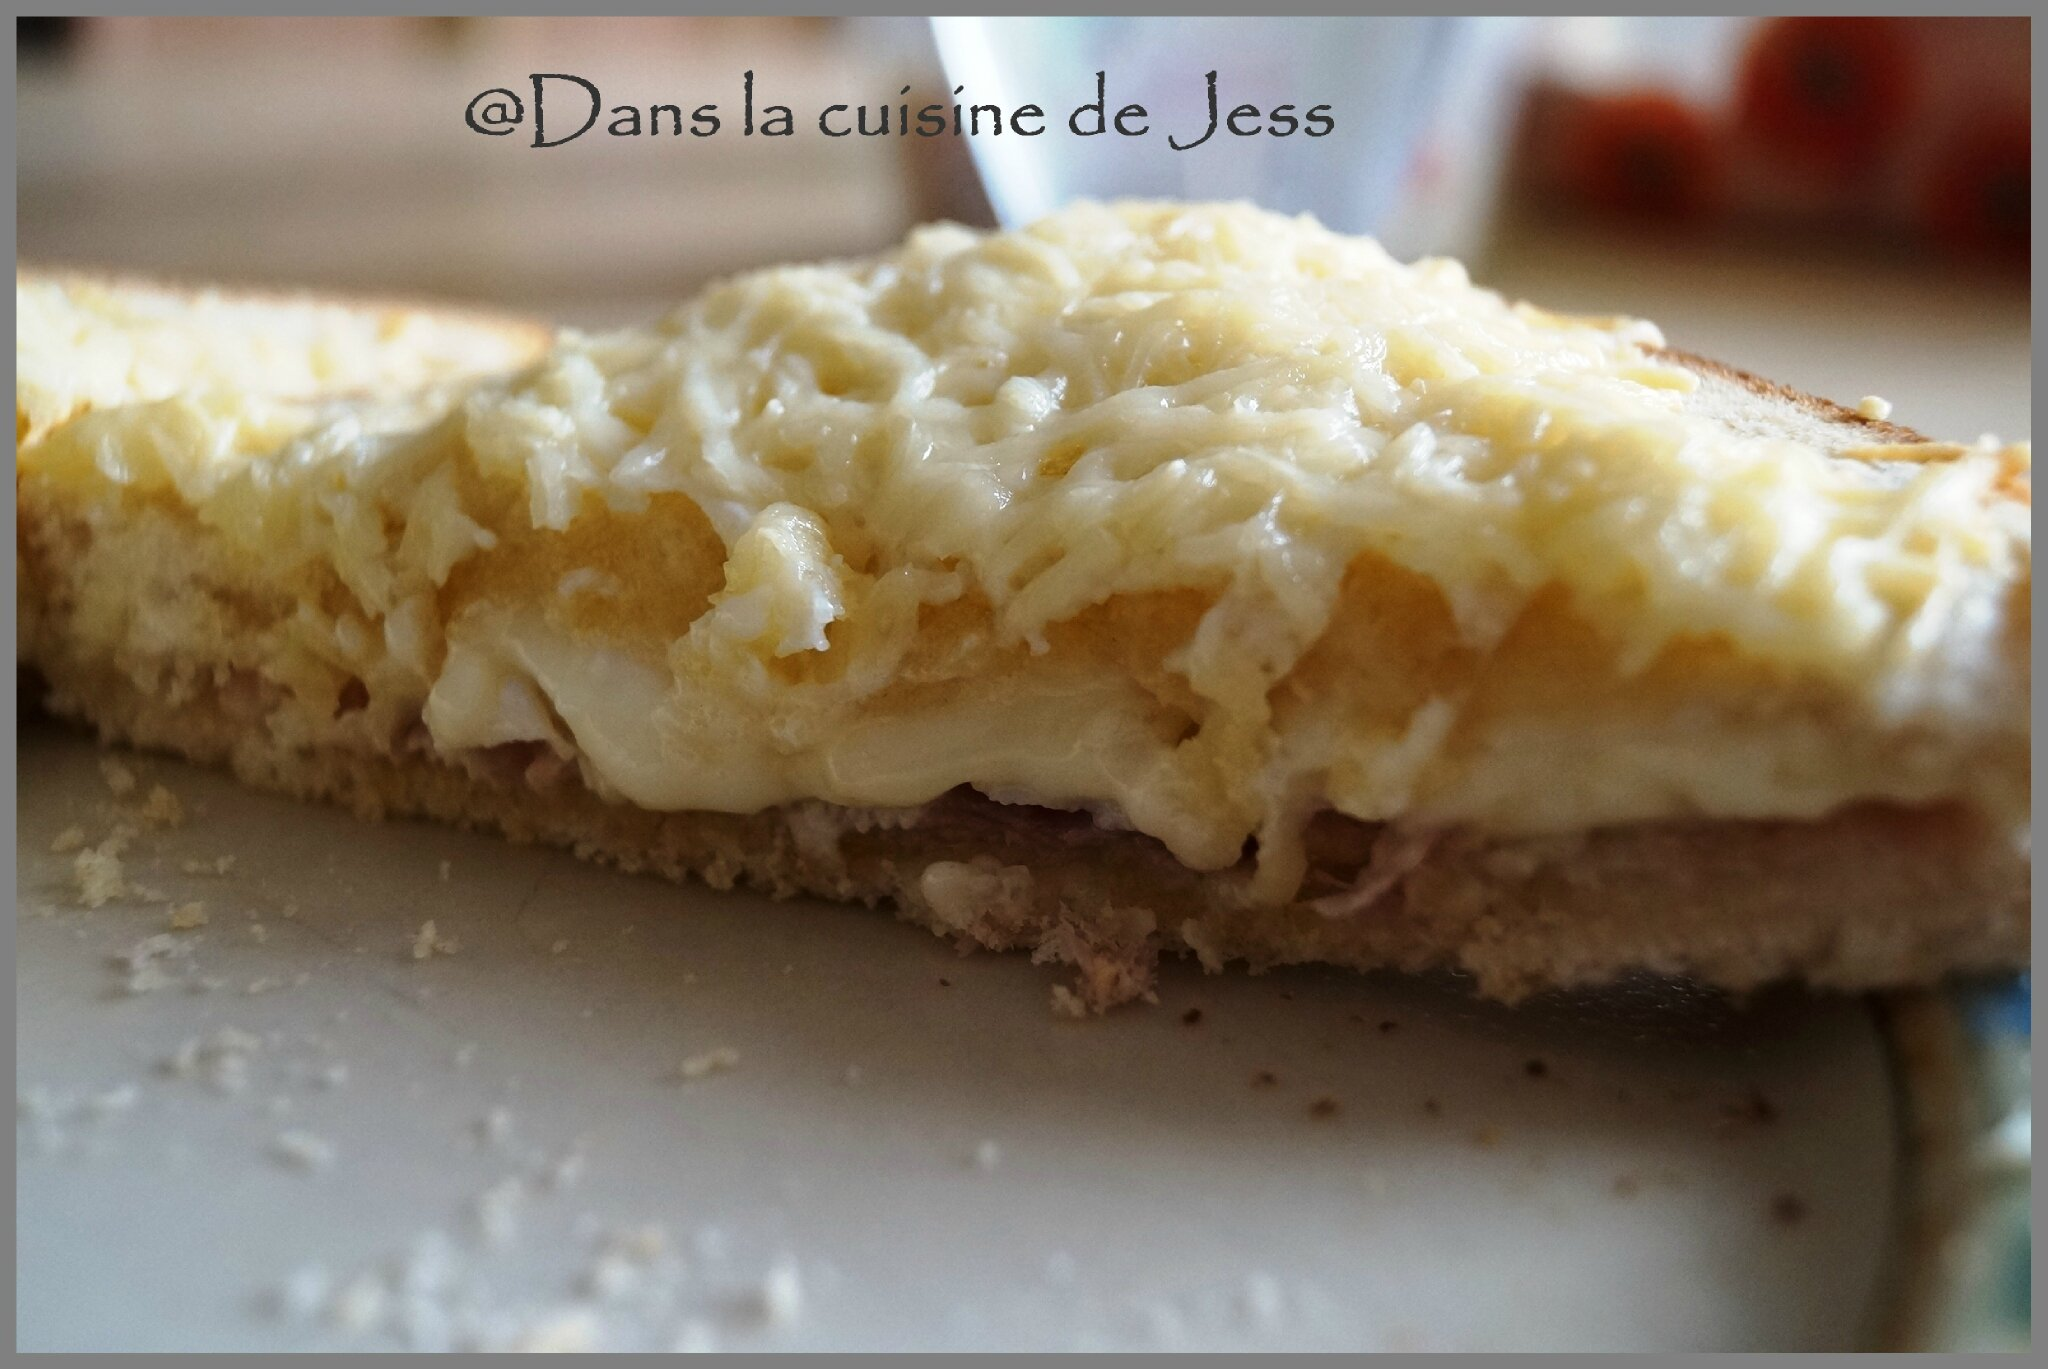 brie croque monsieur sandwiches recipe yummly brie croque monsieur